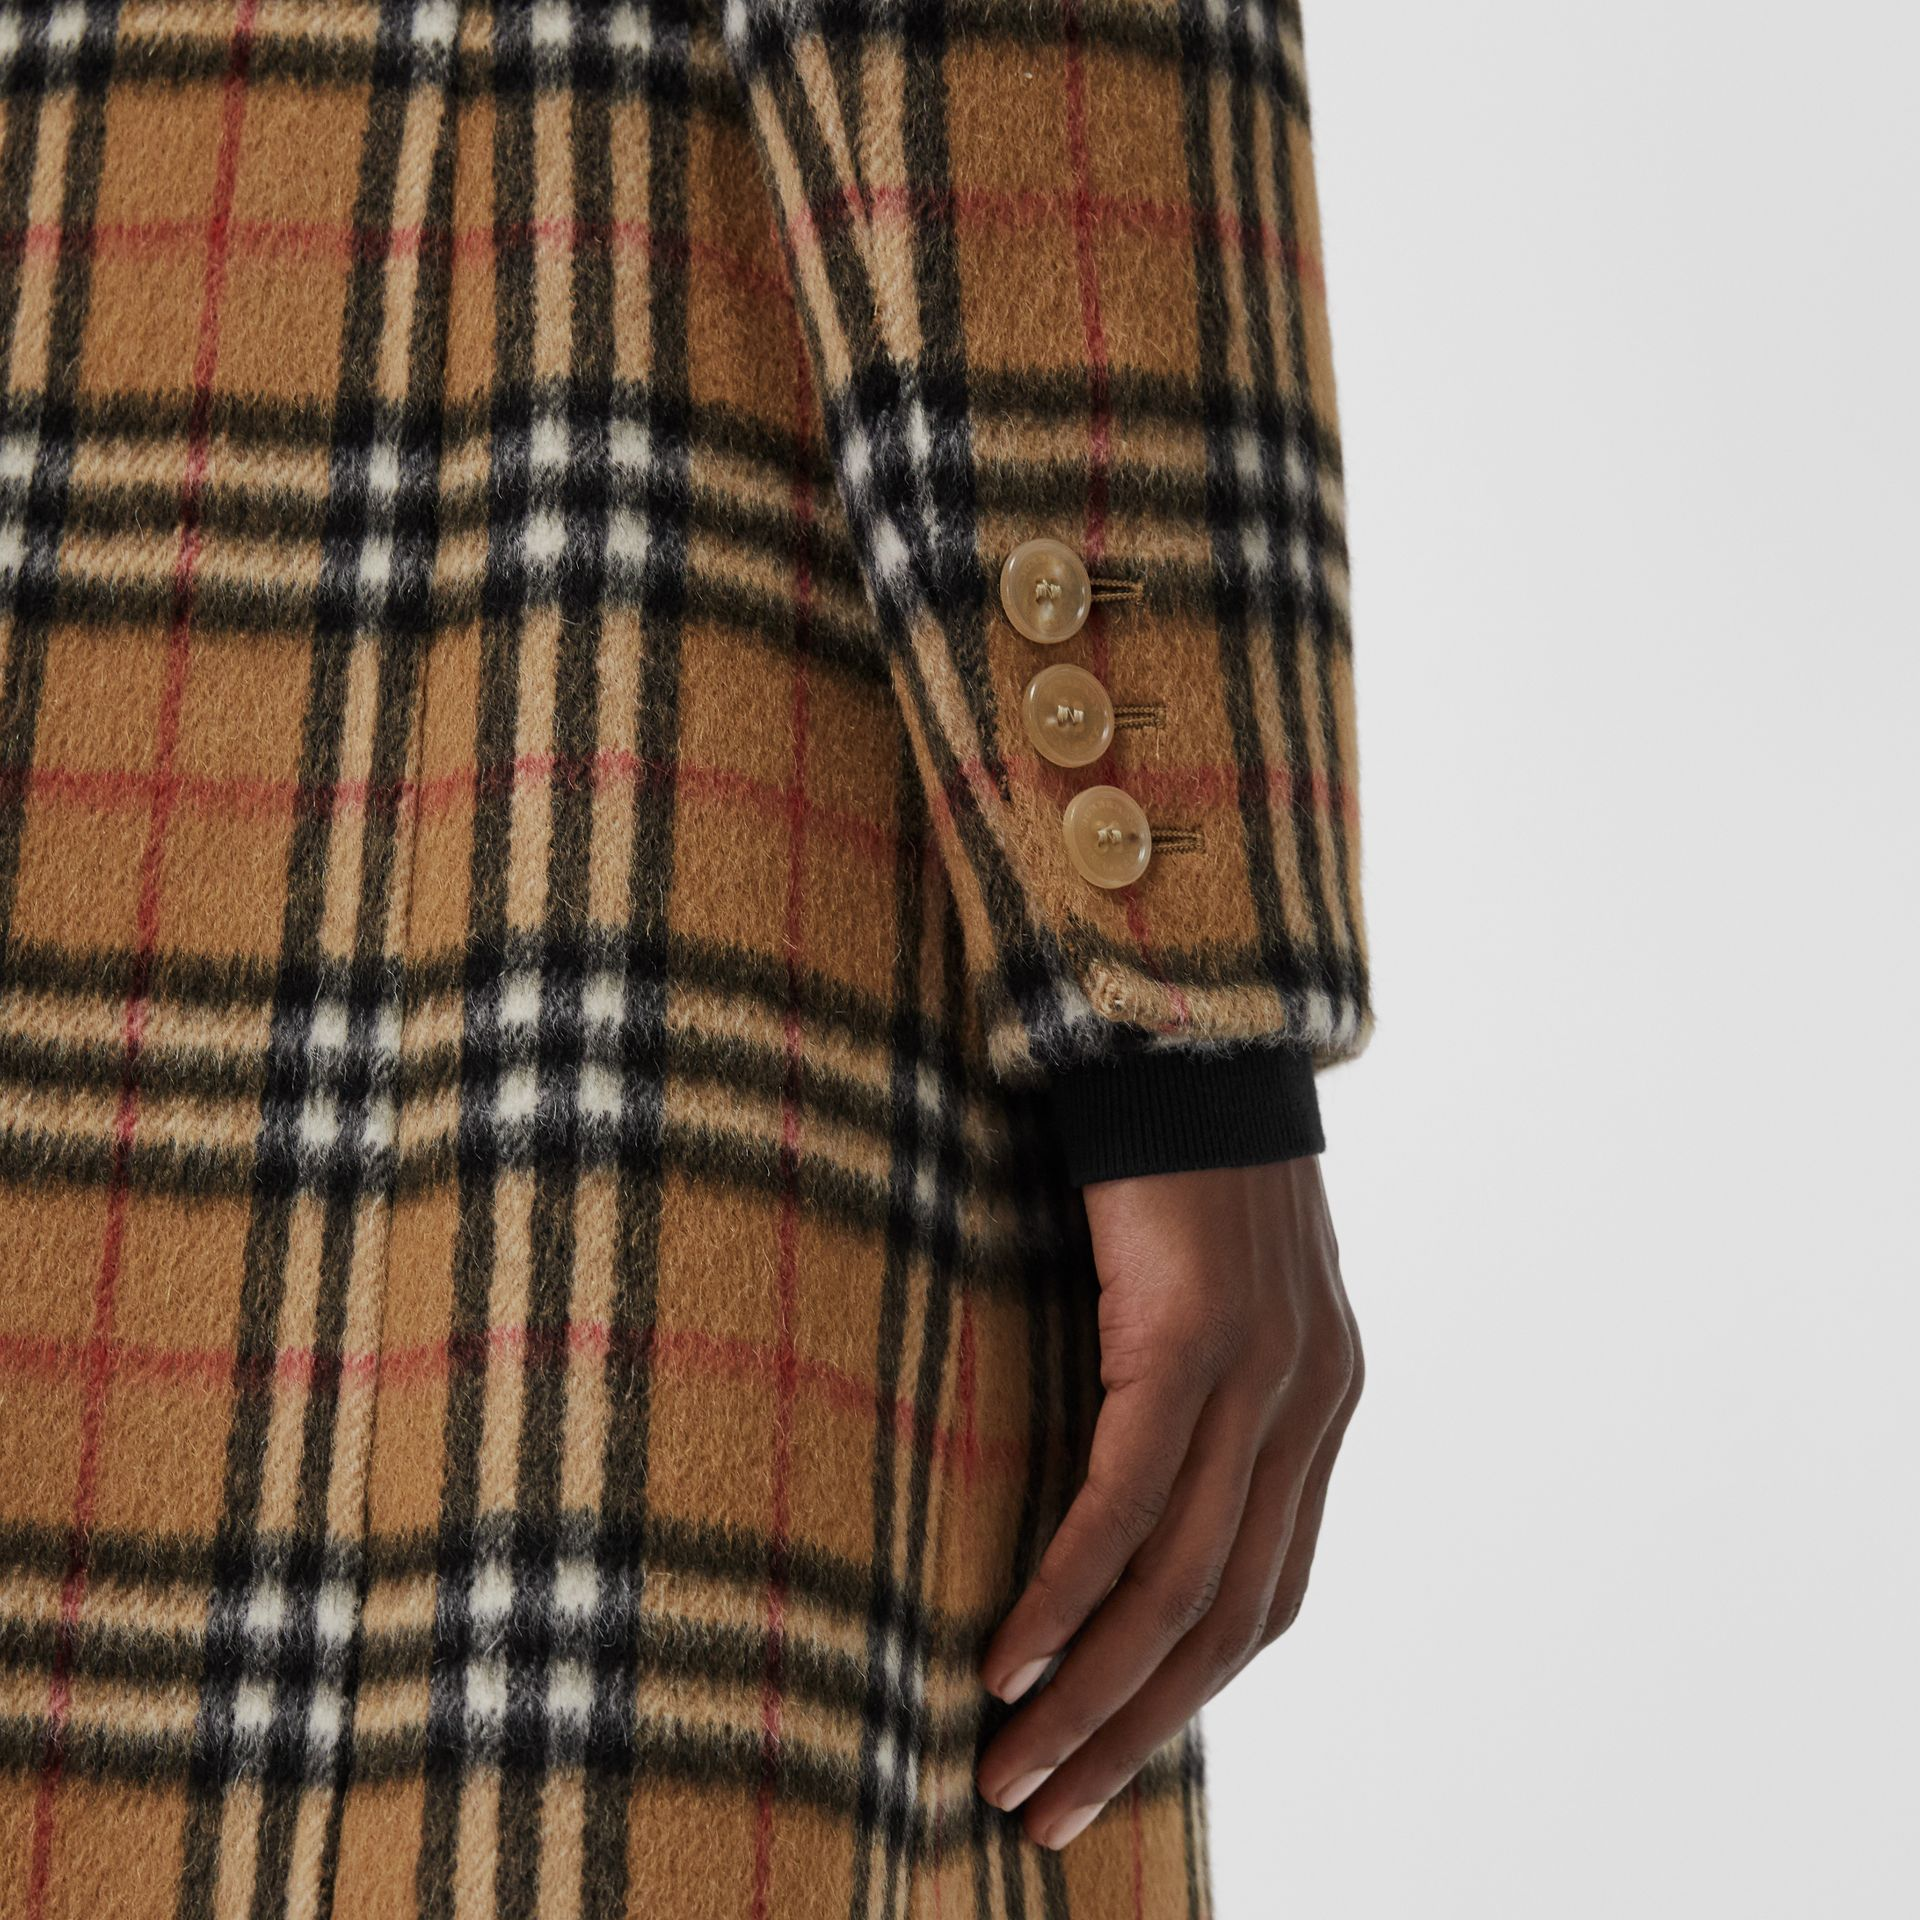 Manteau ajusté en alpaga à motif Vintage check (Jaune Antique) - Femme | Burberry - photo de la galerie 4